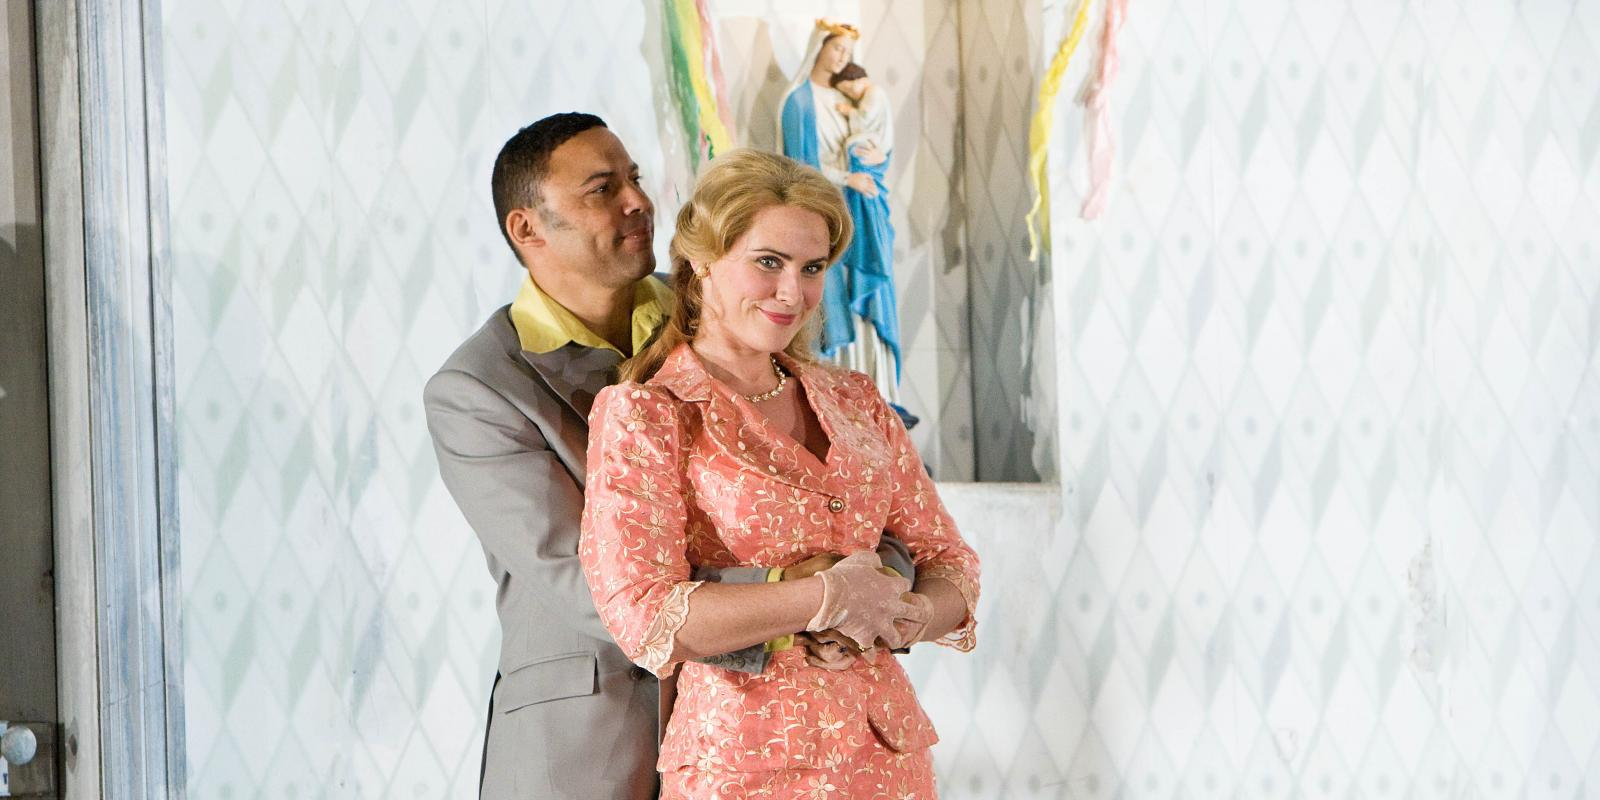 Man in grey suit with arms wrapped around a woman in a pink outfit in ENO's Jenufa